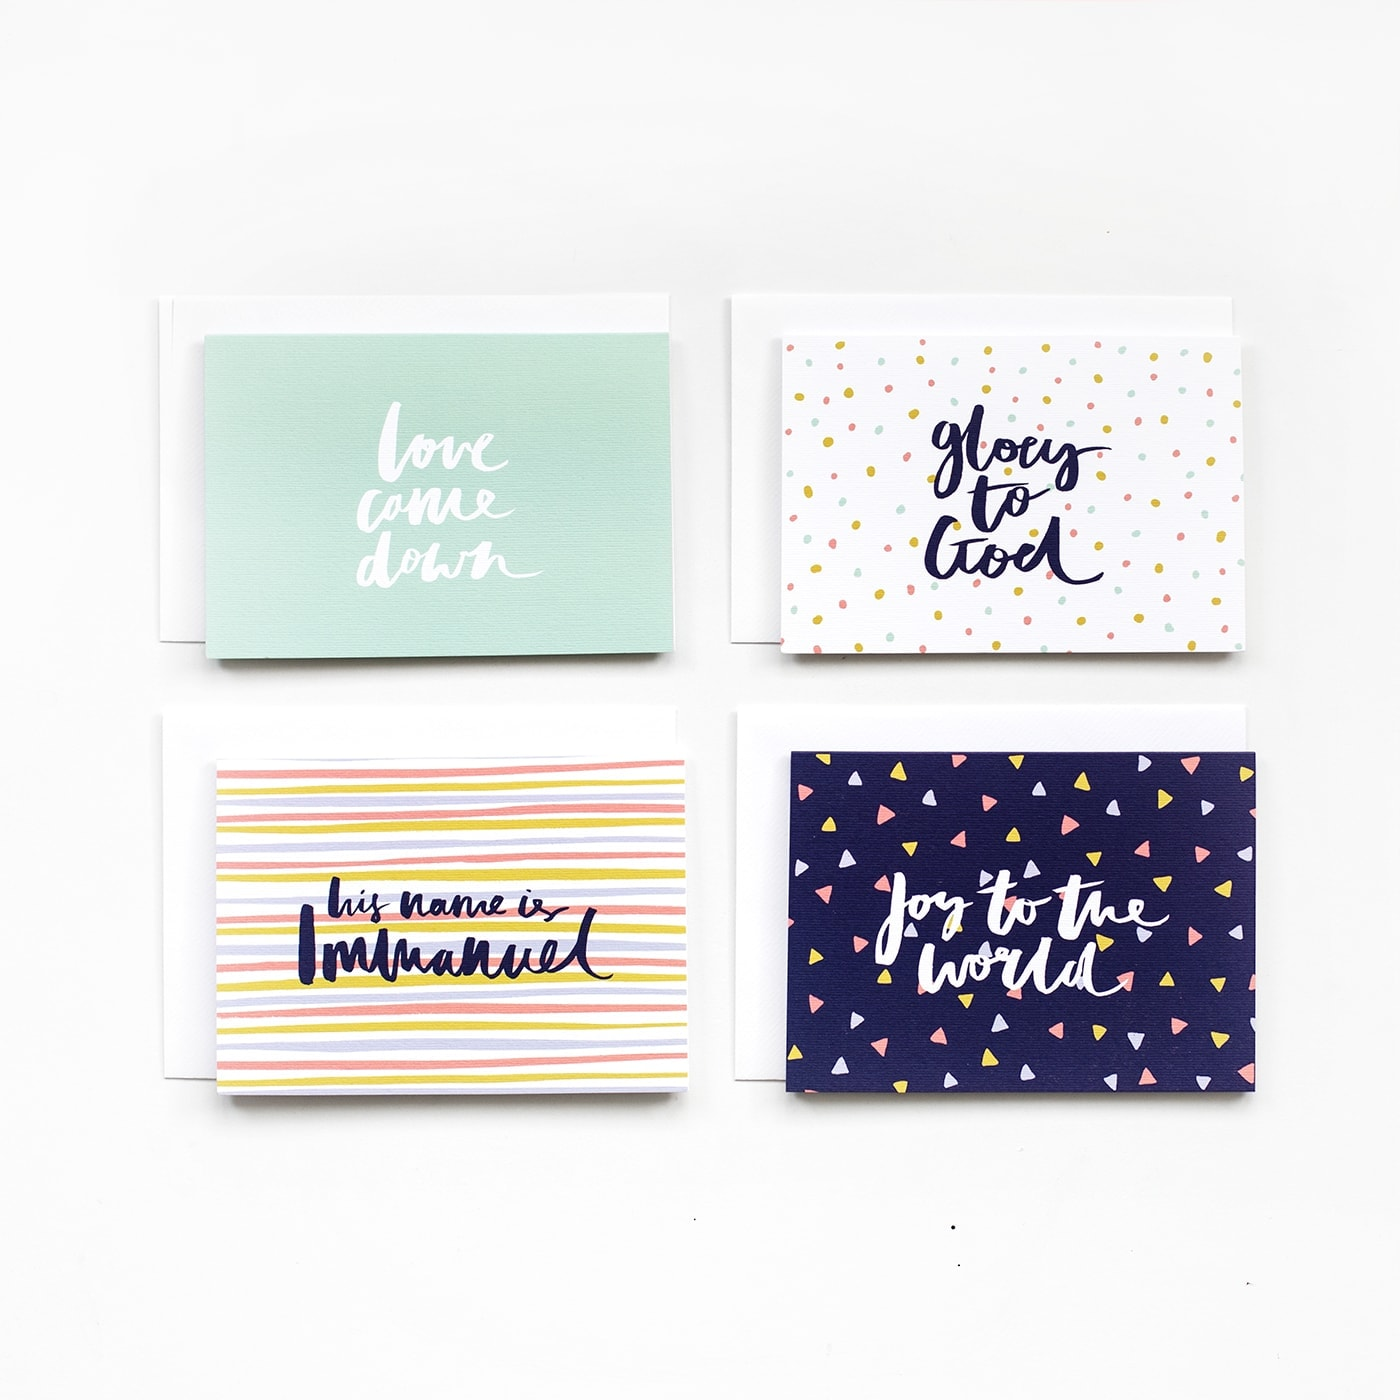 christian-christmas-cards-complete-with-bible-verse-on-the-back